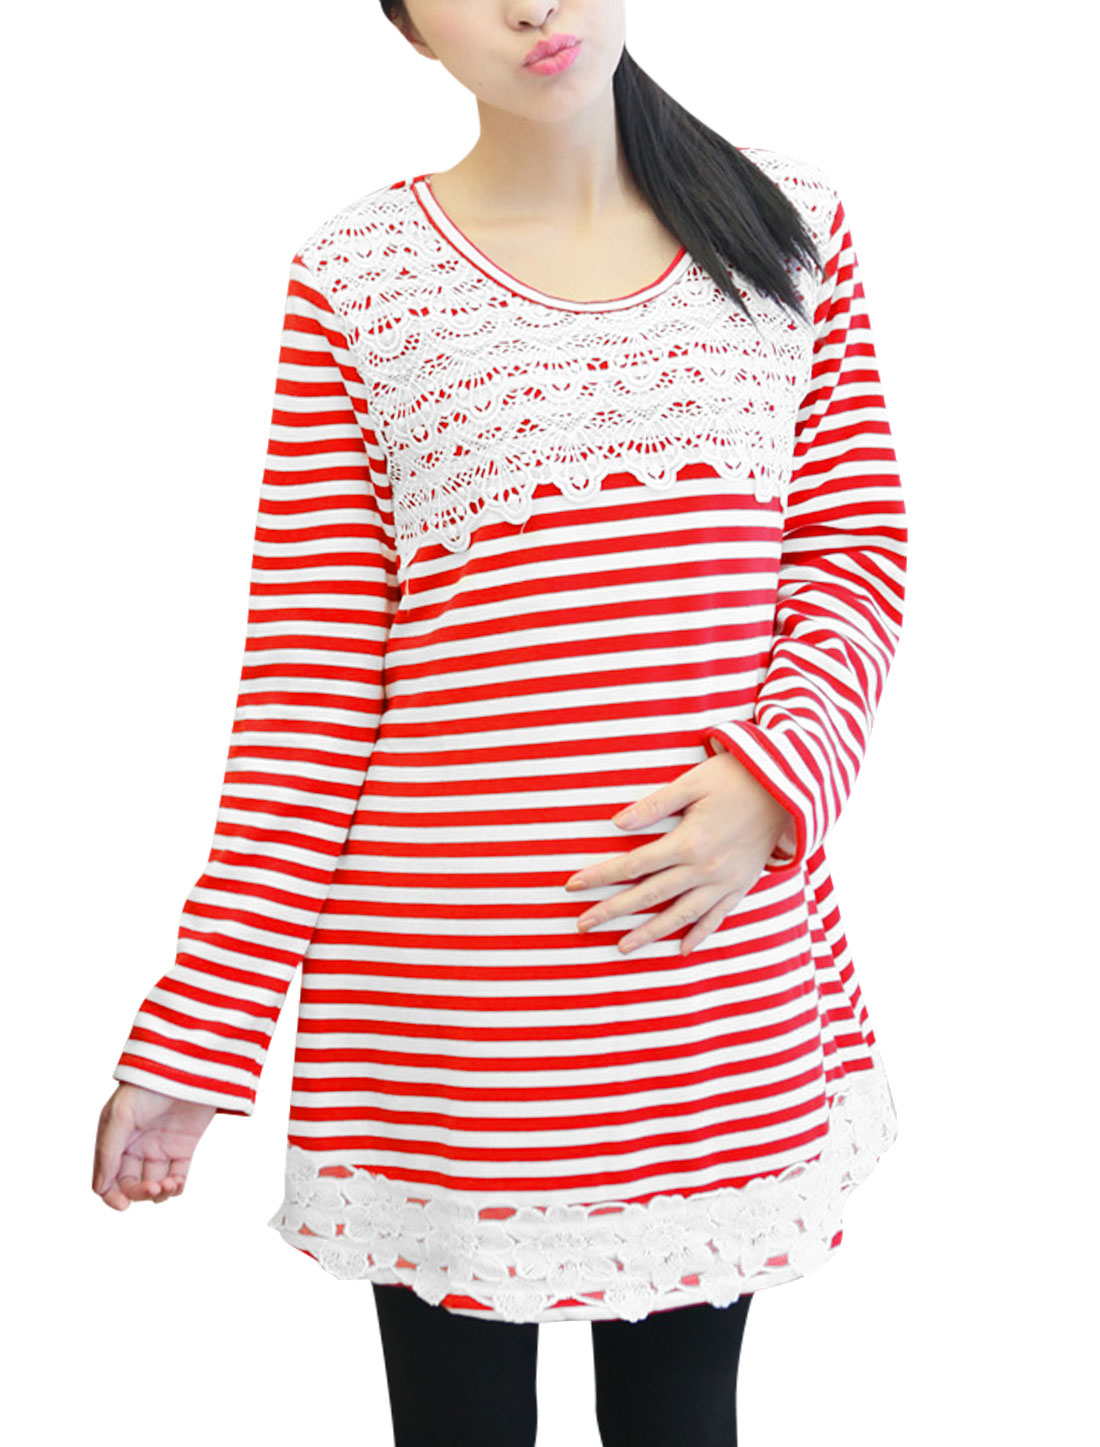 Maternity Stripes Tunic Top w Removable Tie Straps Back Red White L